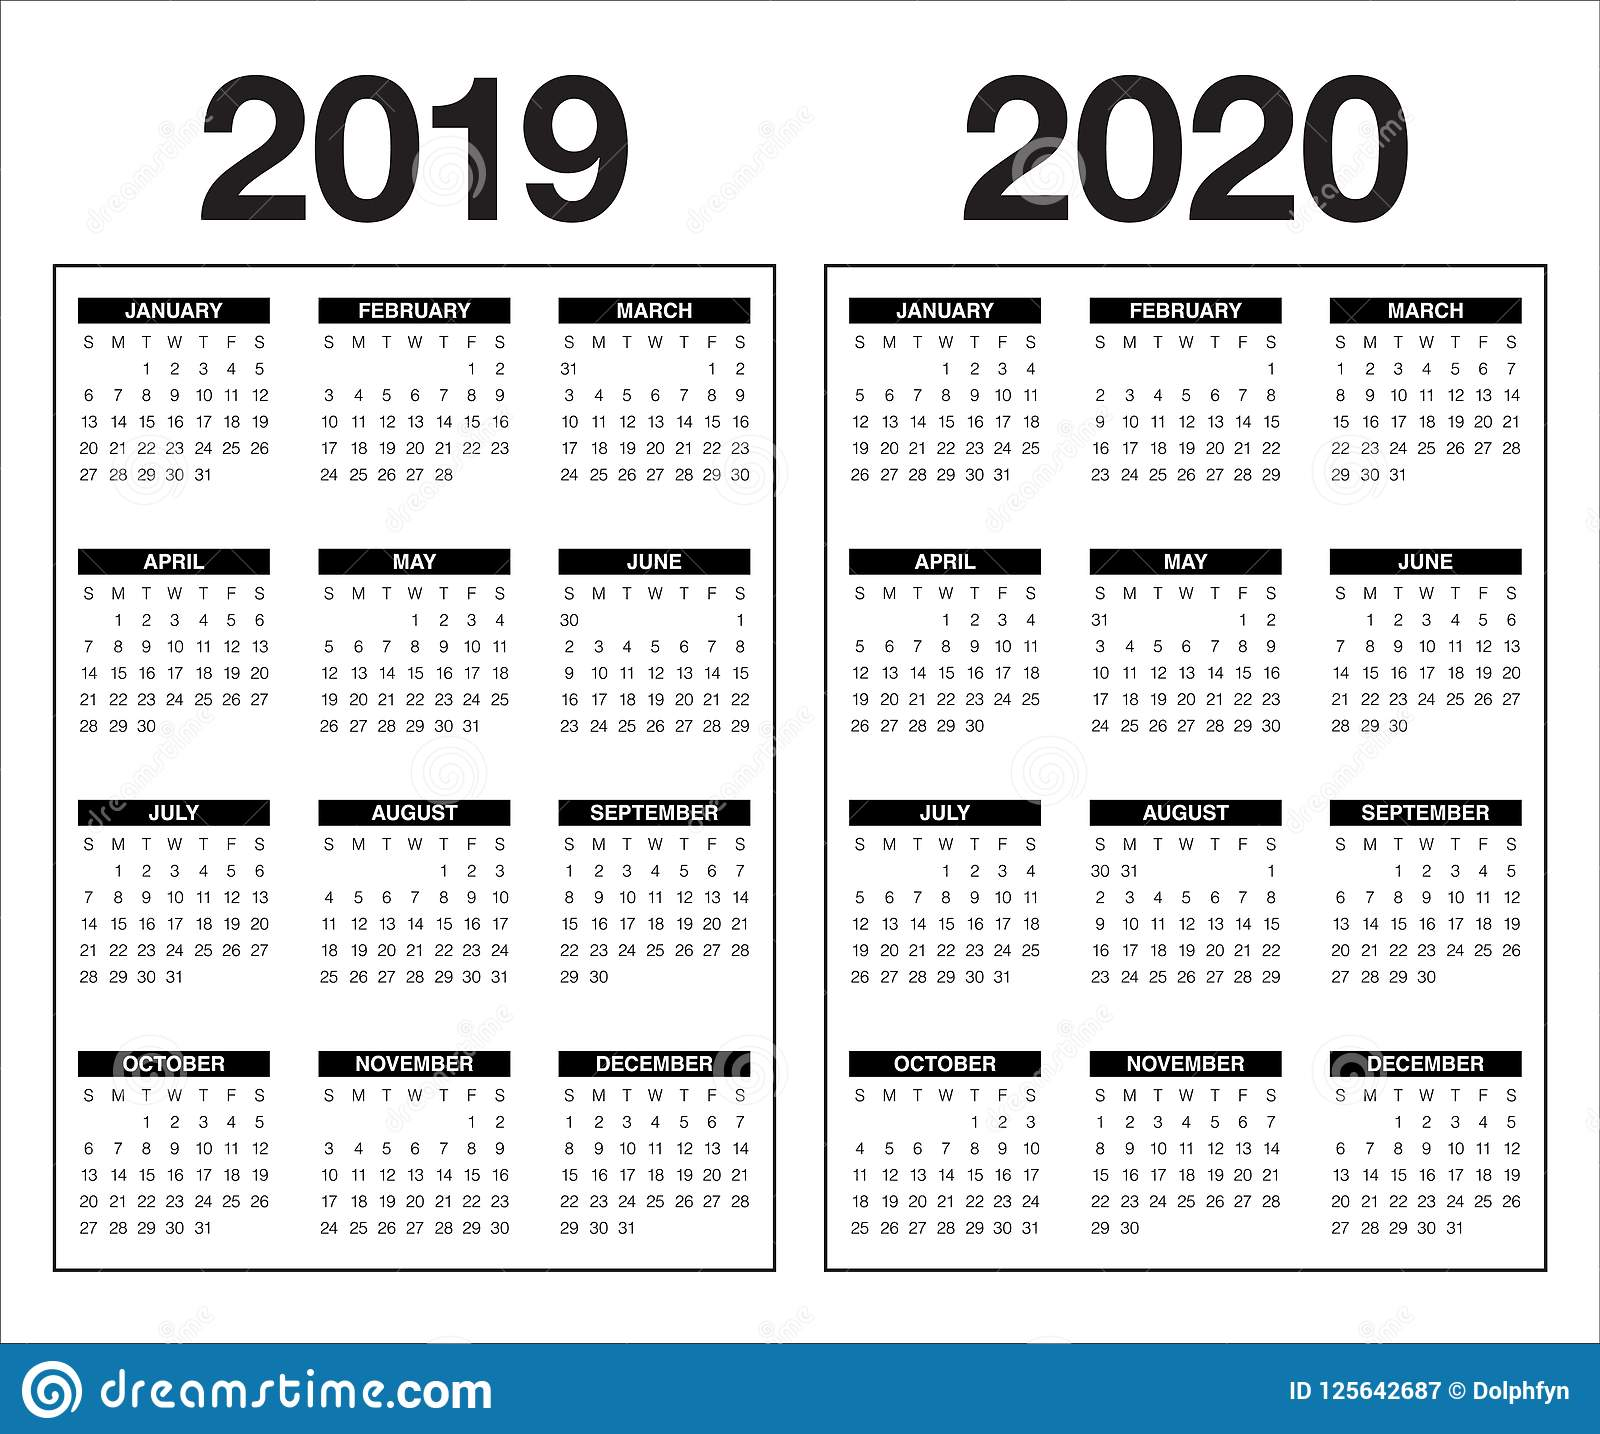 2020 Year Calendar Template Year 2019 2020 Calendar Vector Design Template Stock Vector